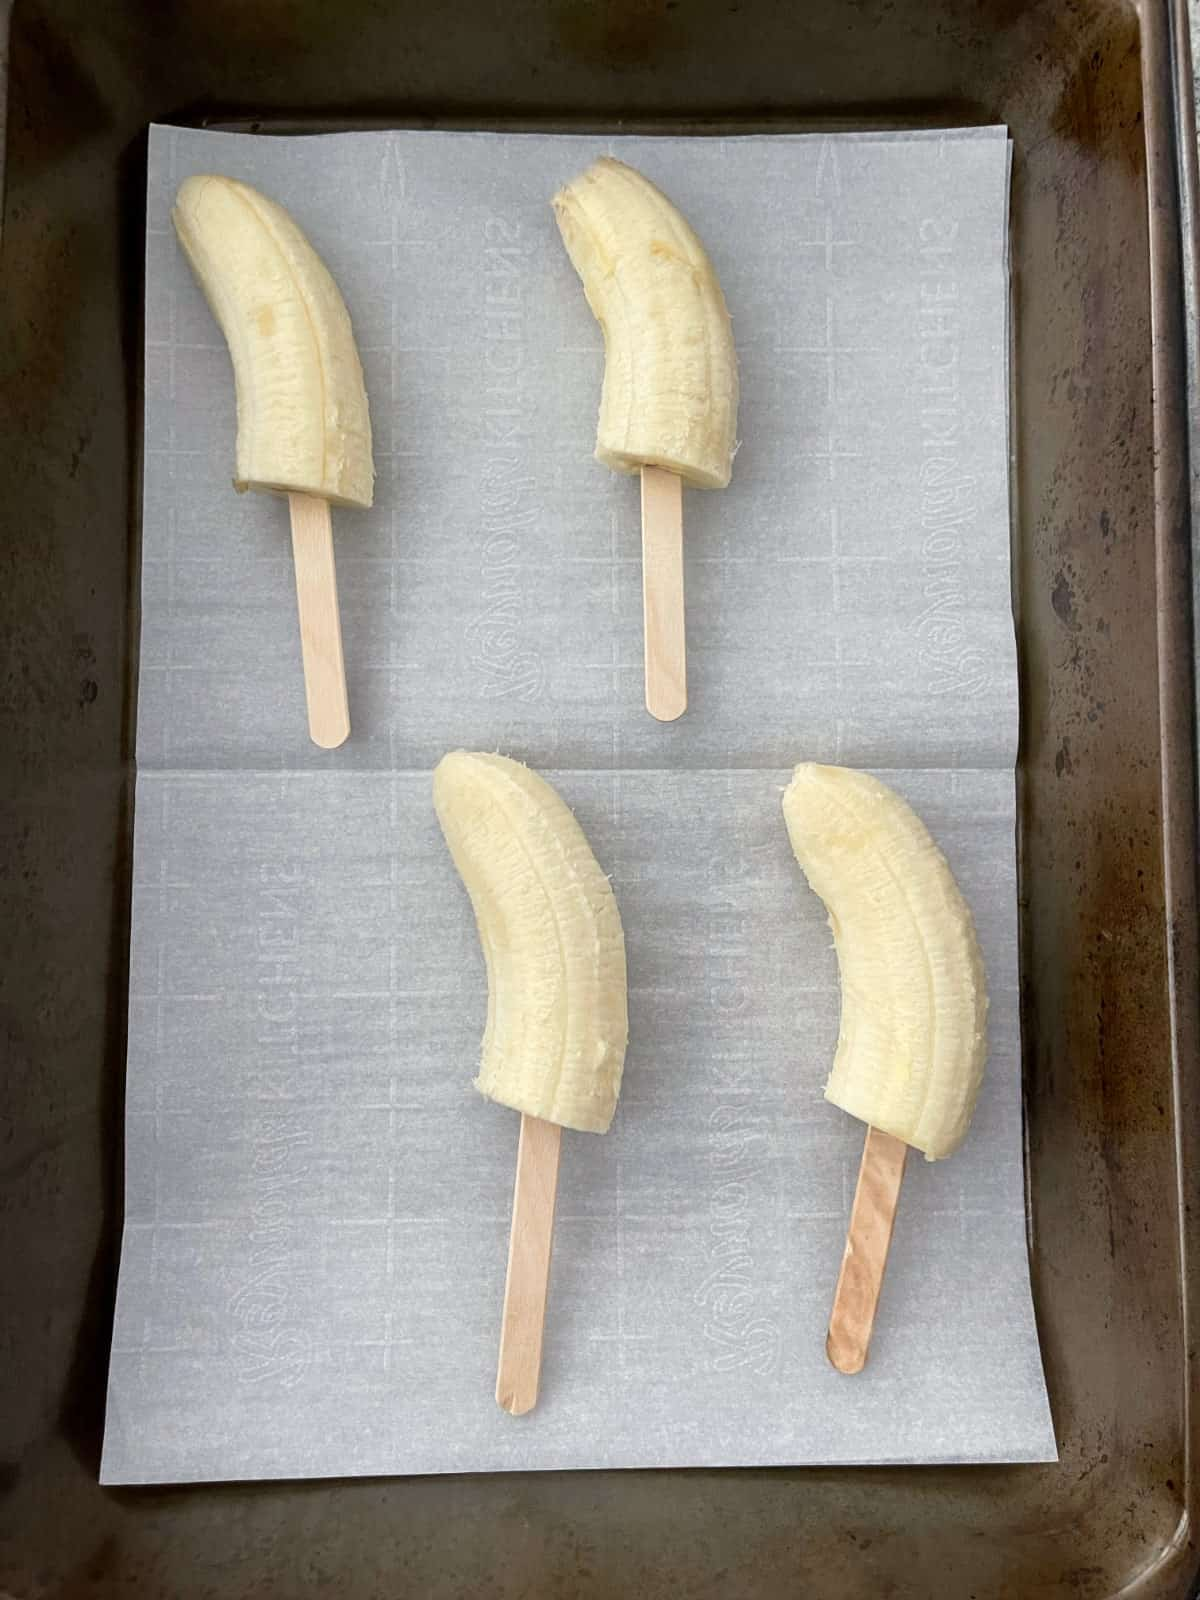 Peeled bananas cut in half on wooden popsicle sticks in parchment lined pan.